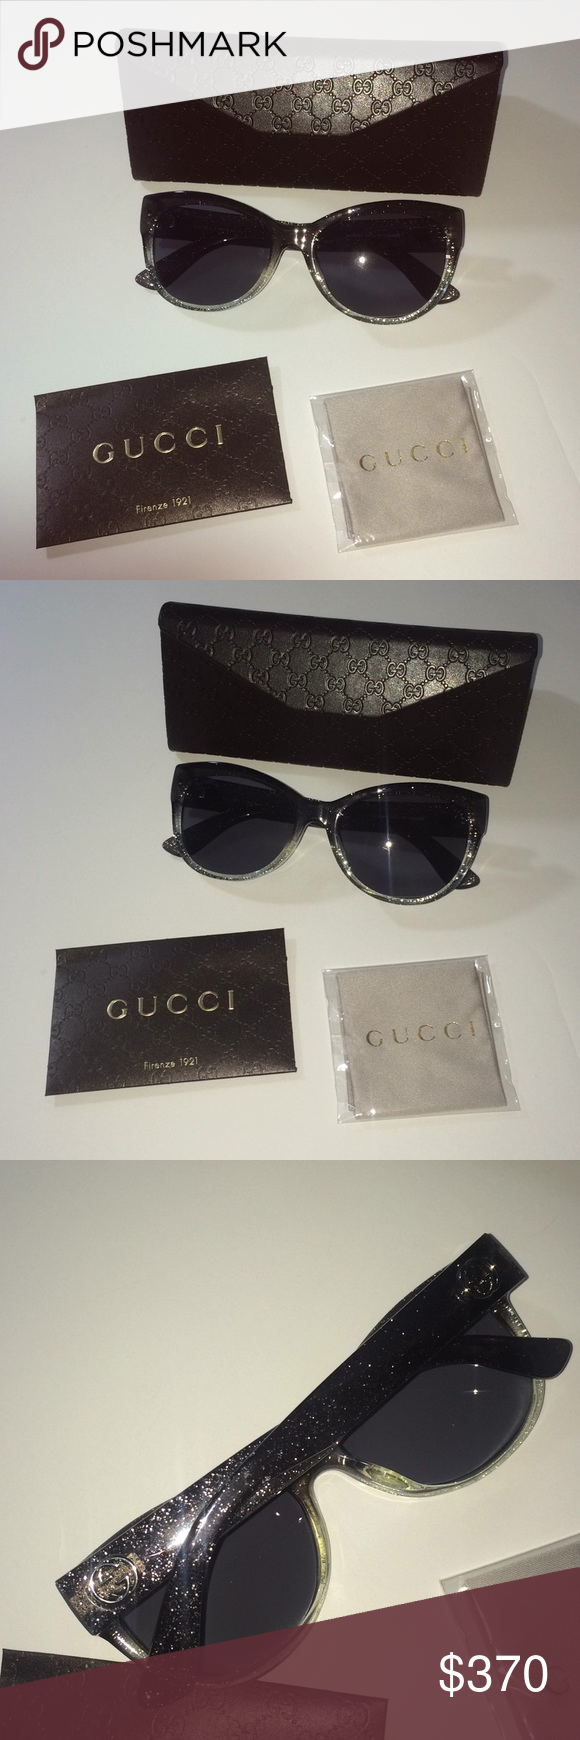 6d5ea566622 Gucci butterfly glasses ombré glitter 60MM New in box / never worn - comes  w box, glasses wipe and authenticity card - Butterfly sunglasses - ombré  grey ...